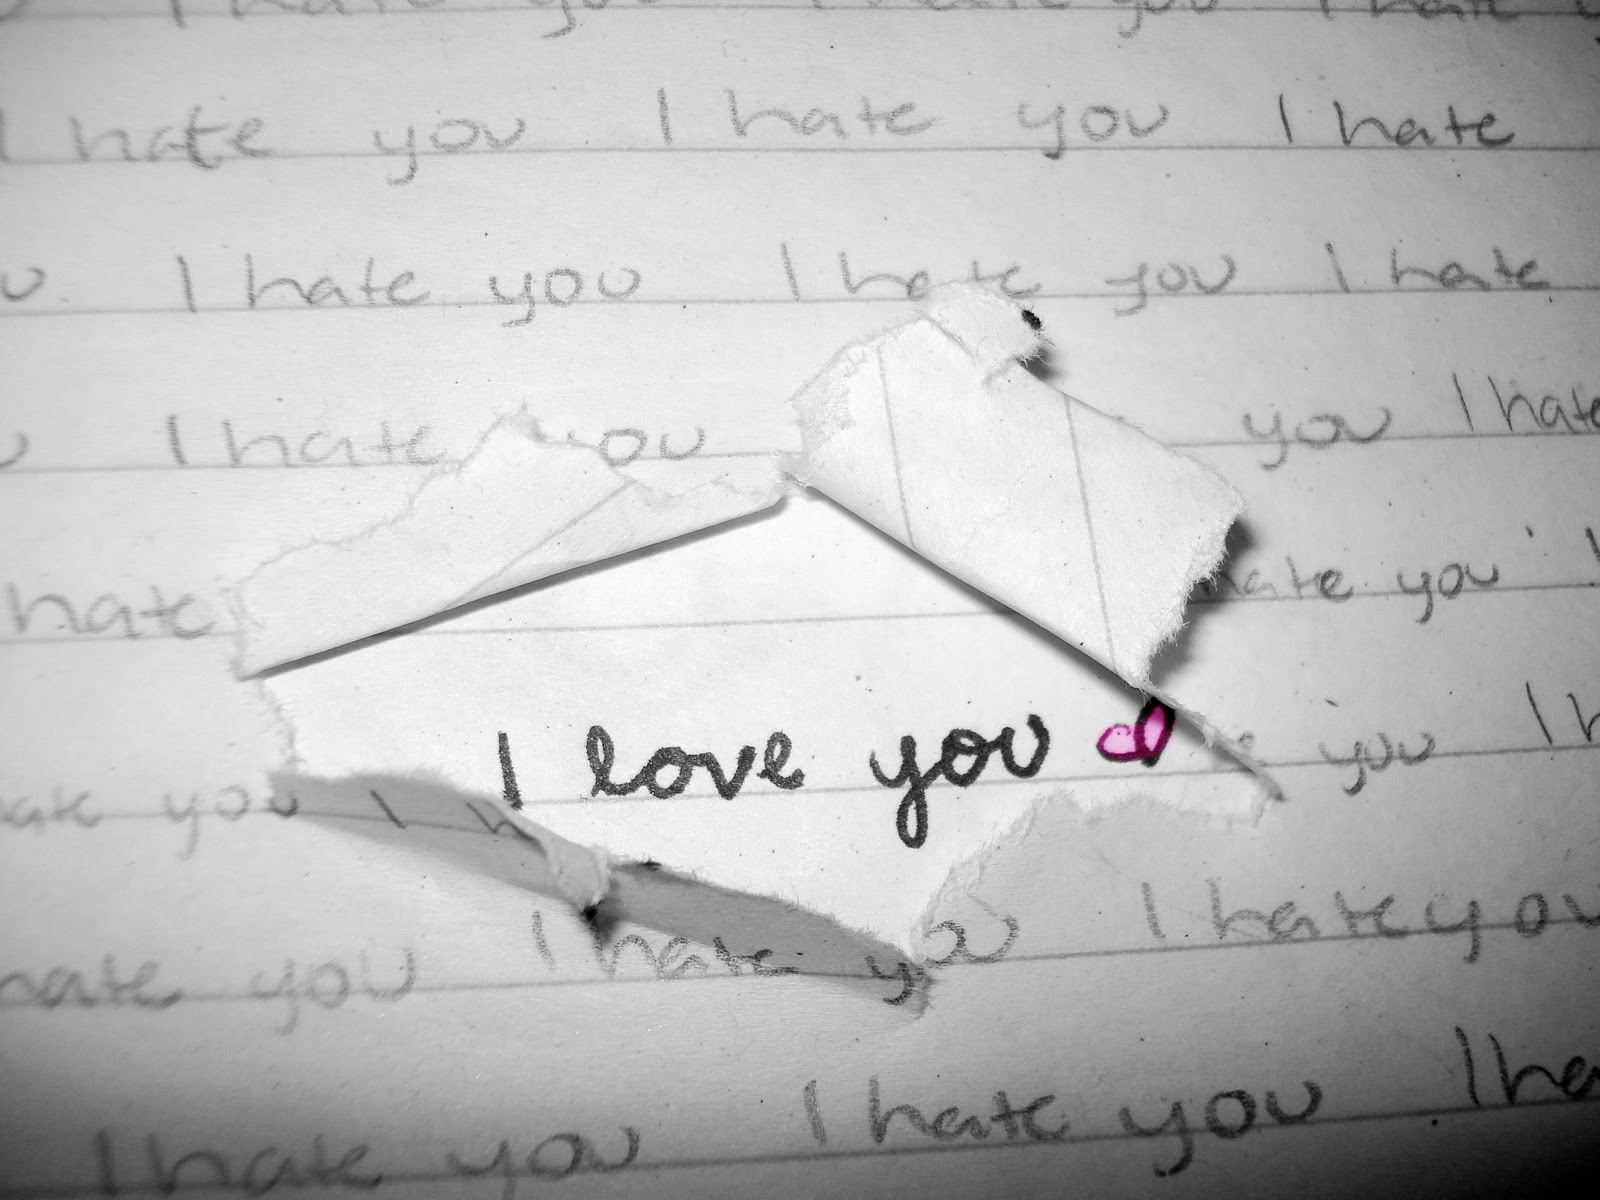 Cheesy Quotes Romantic Pictures I Love You Poems I Hate You Bit I